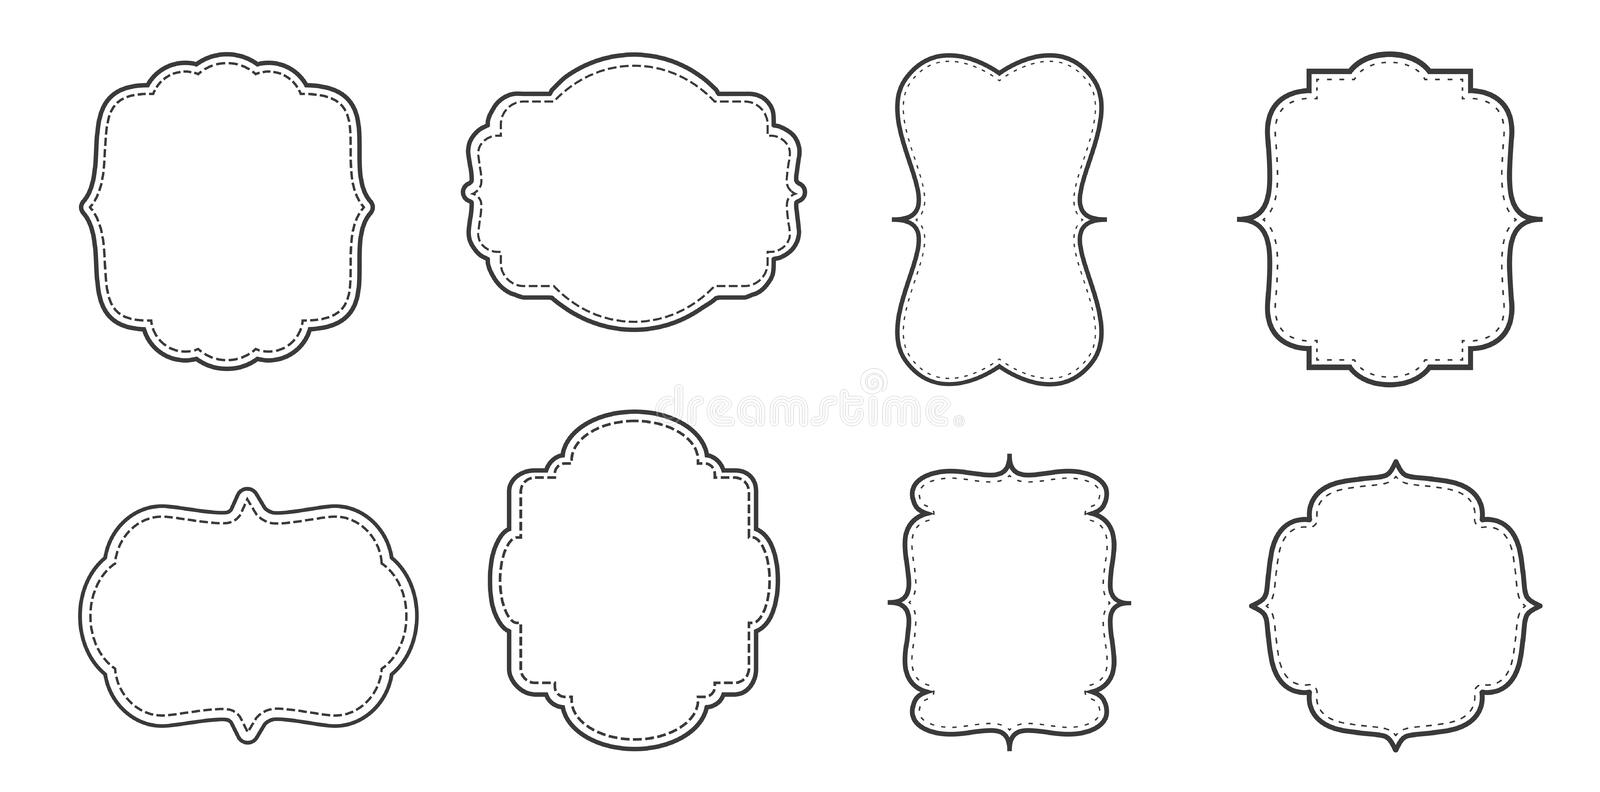 Fancy Page Border Set. Stock Vector. Illustration Of Page